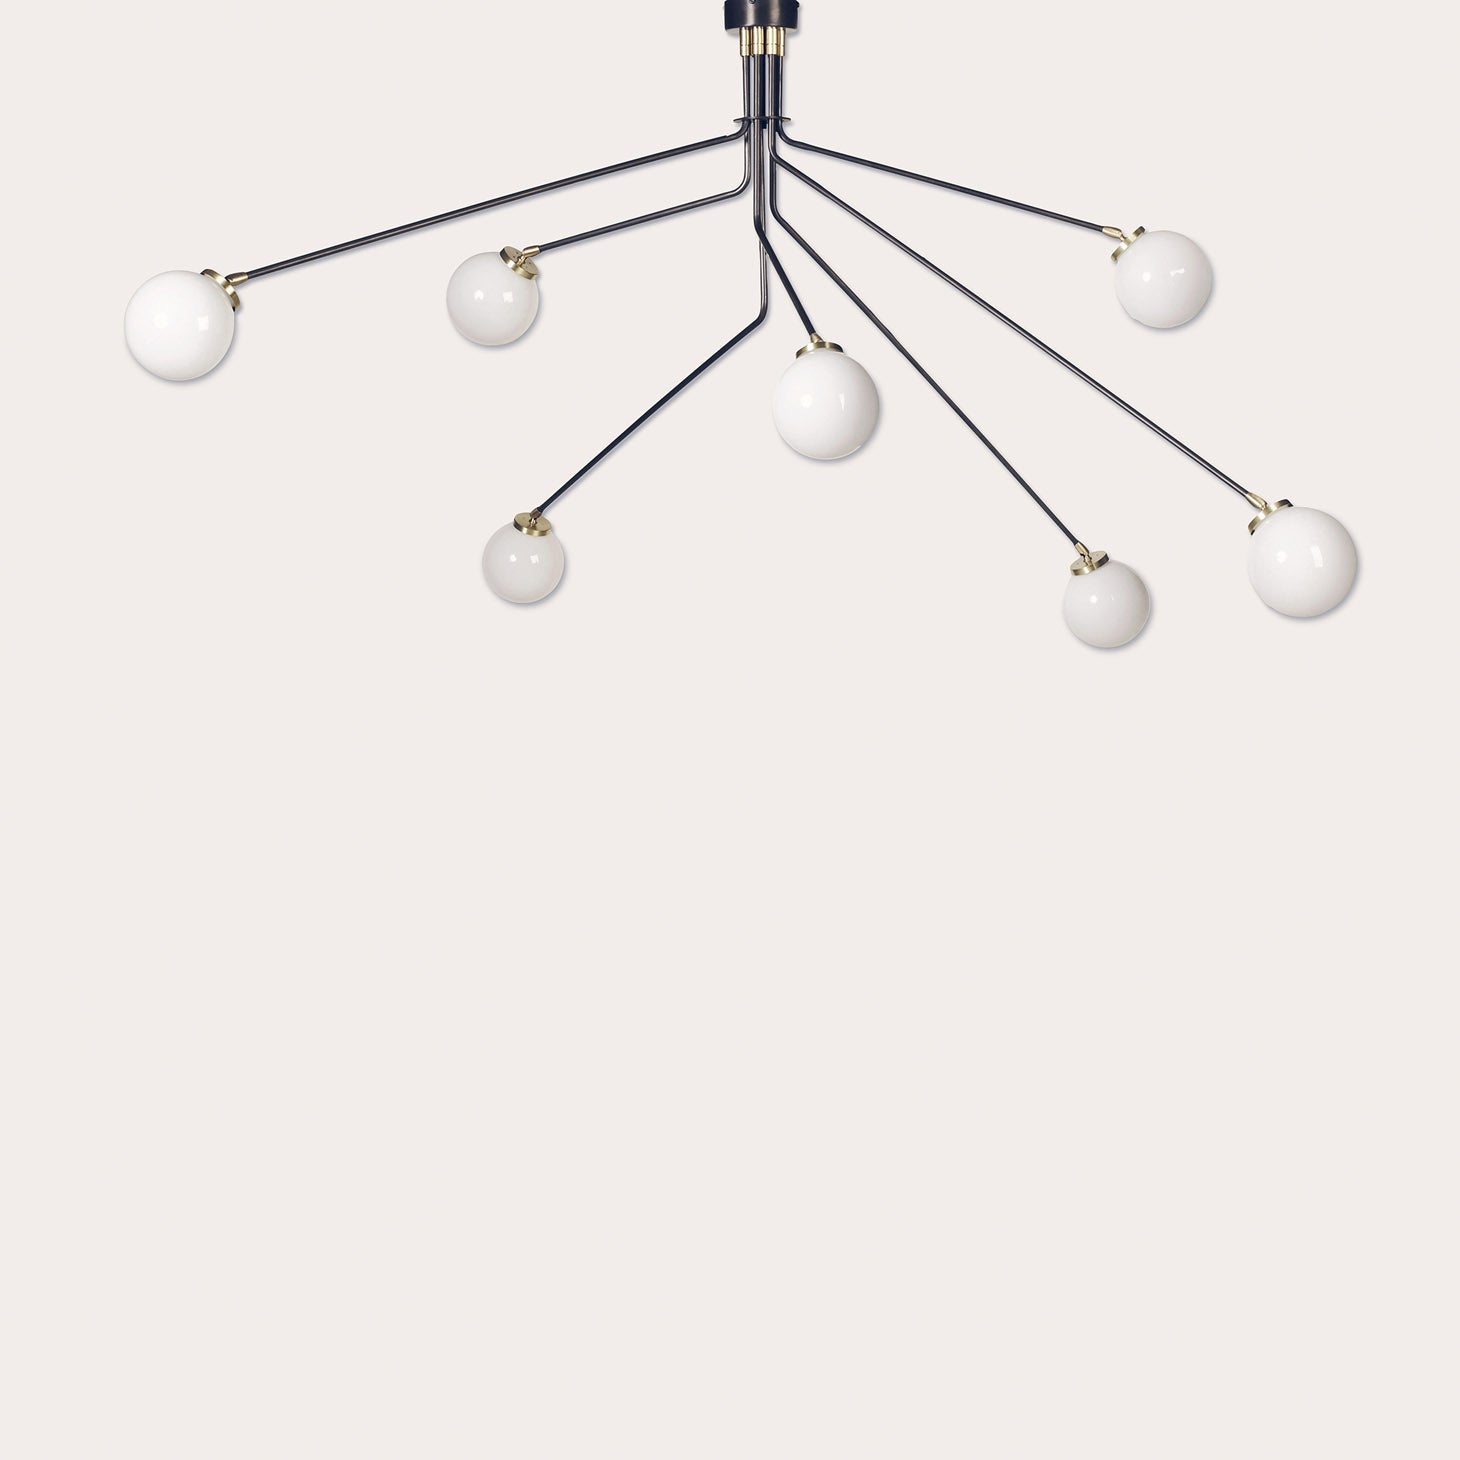 Array Opal Lighting Chris Turner Designer Furniture Sku: 632-160-10053